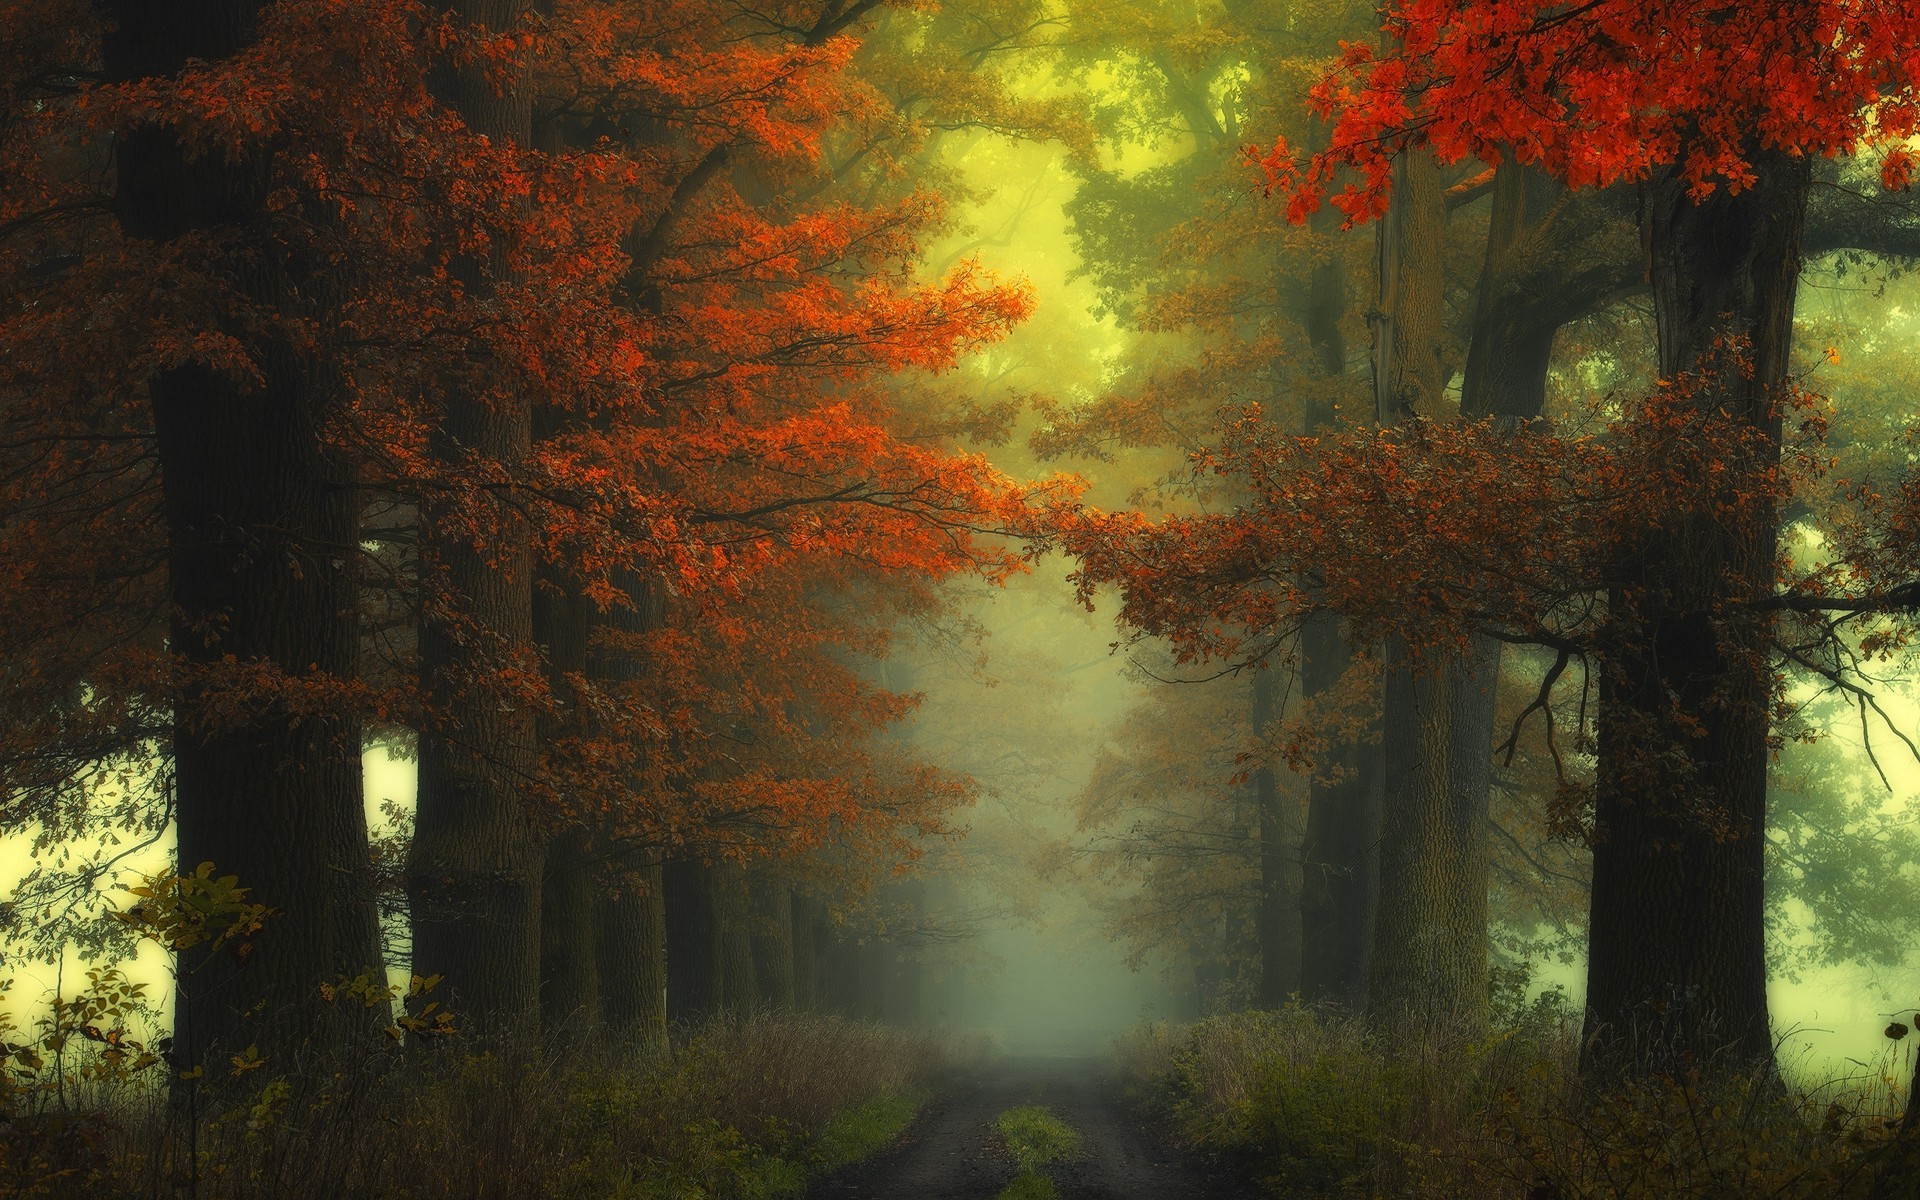 Free Wallpaper Fall 1600x900 Nature Landscape Mist Forest Path Sunrise Shrubs